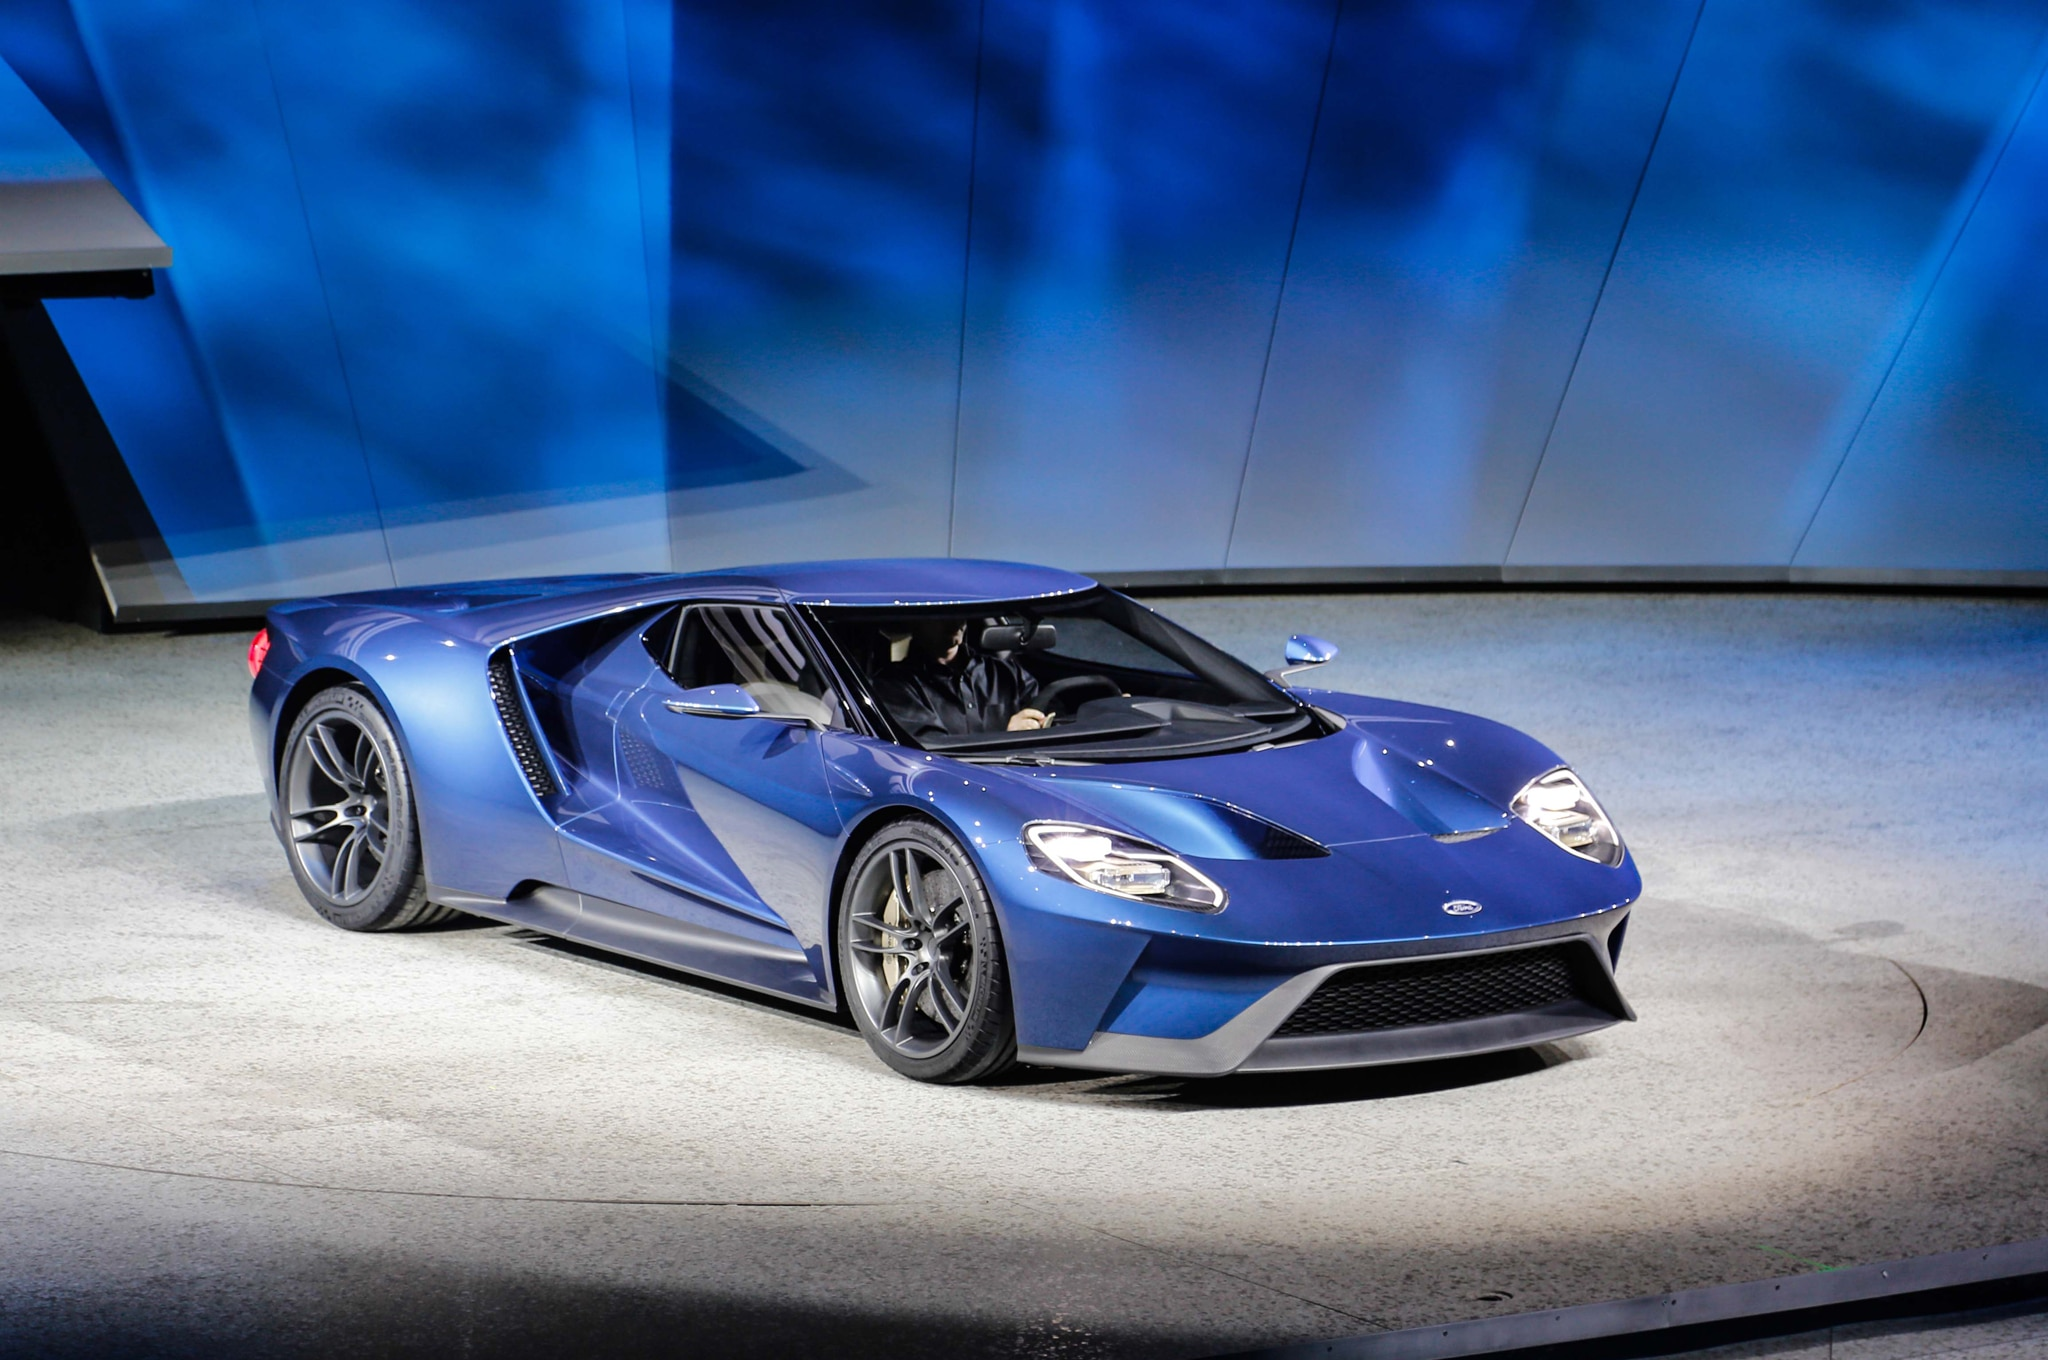 2016 ford gt sport blue wallpaper 2017 ford gt concept car beautiful - Show More